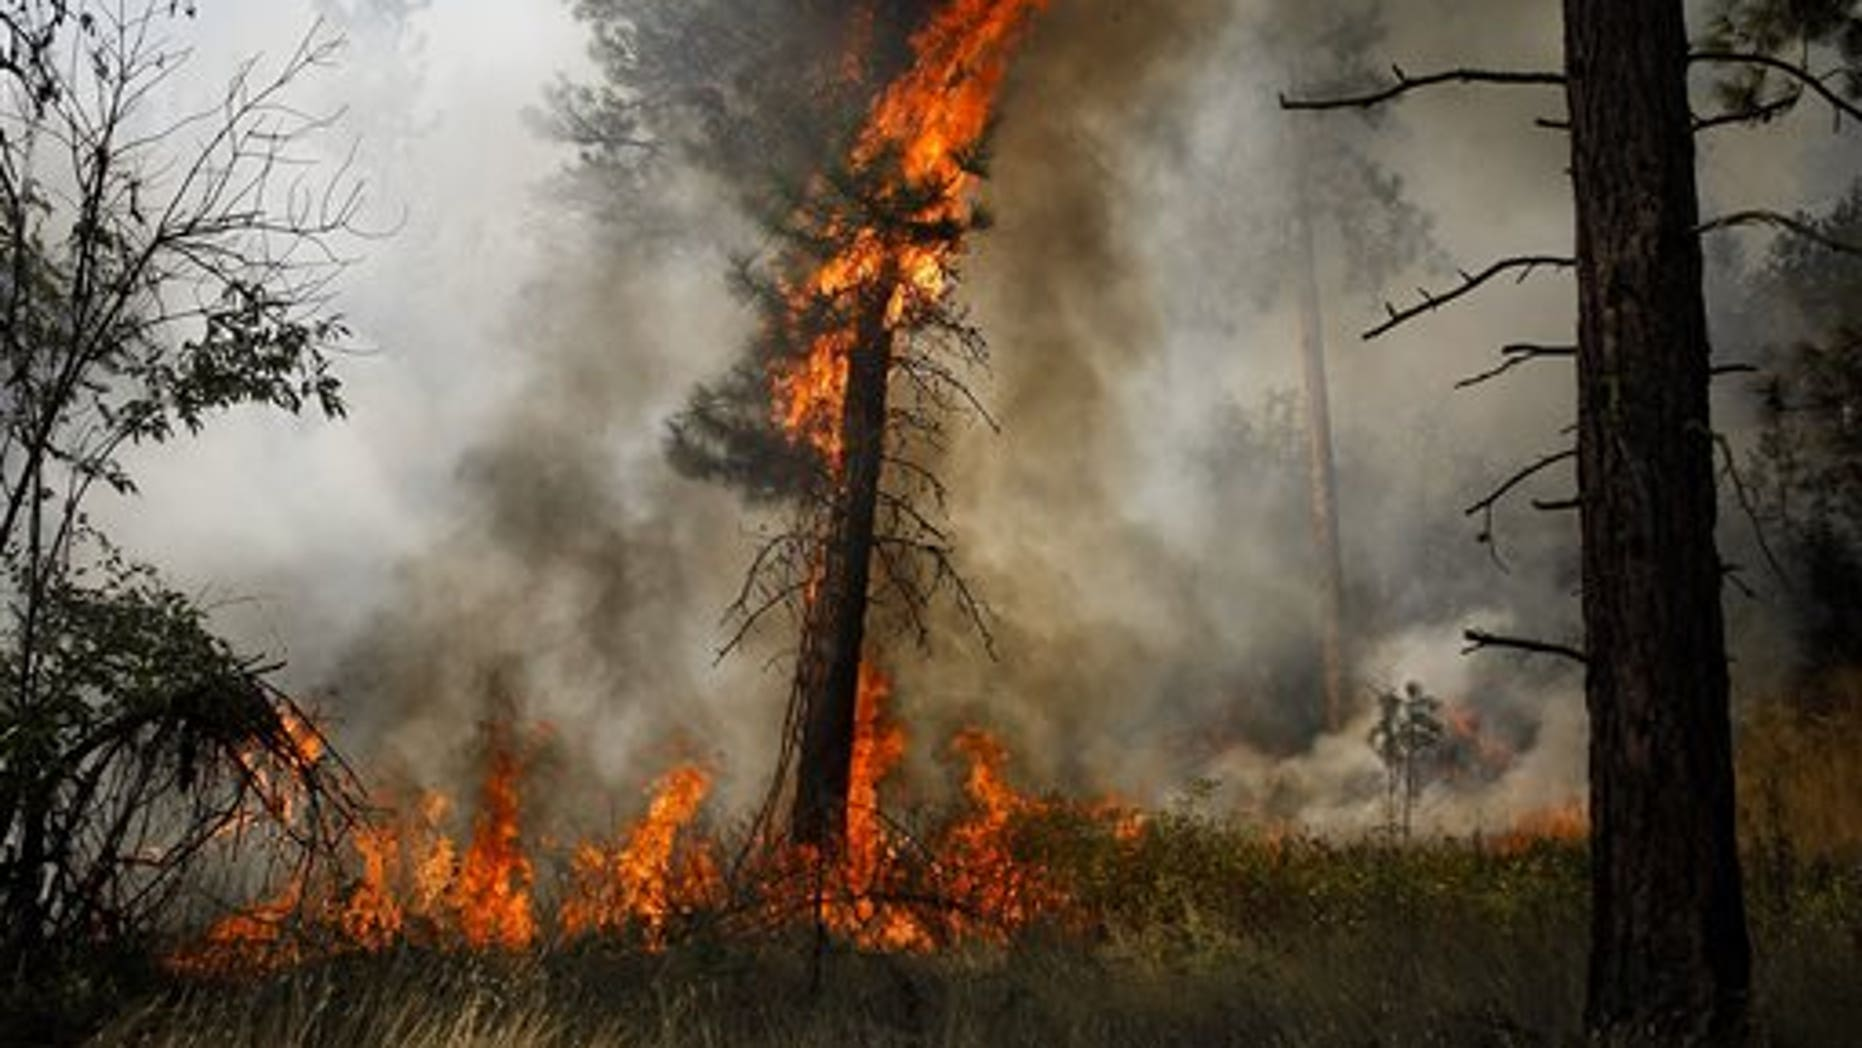 A tree is engulfed in flames during a controlled burn near a fire line outside of Okanogan, Wash., on Saturday, Aug. 22, 2015. (Ian Terry /The Herald via AP) MANDATORY CREDIT